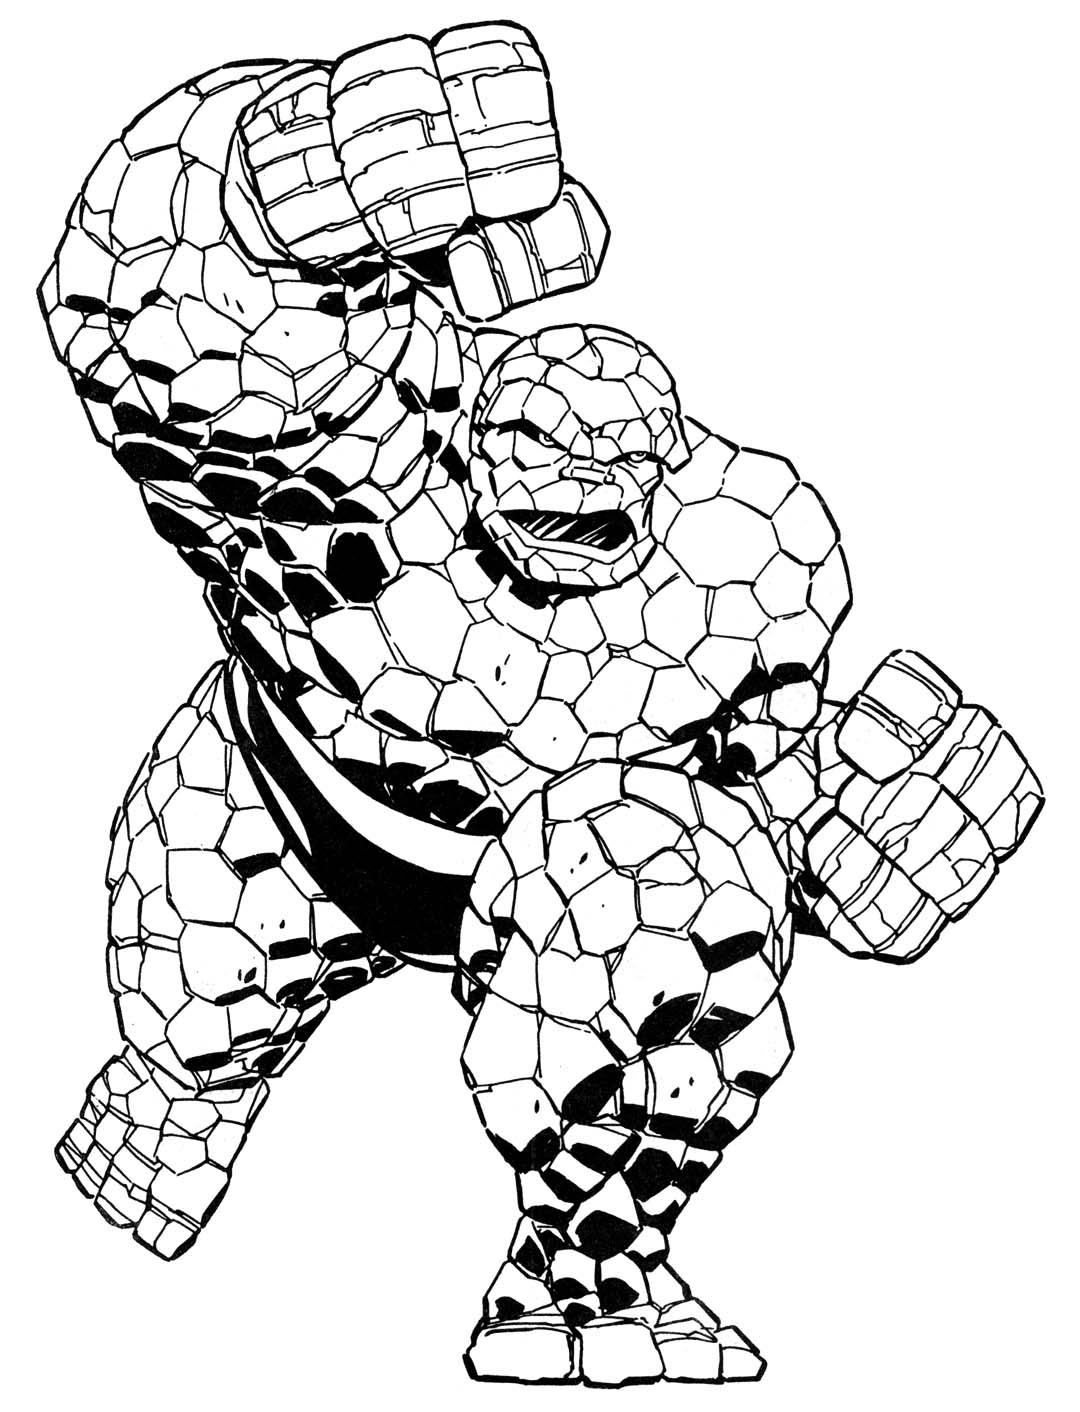 marvel coloring pages printable marvels amazing super hero squad coloring page netart marvel printable coloring pages